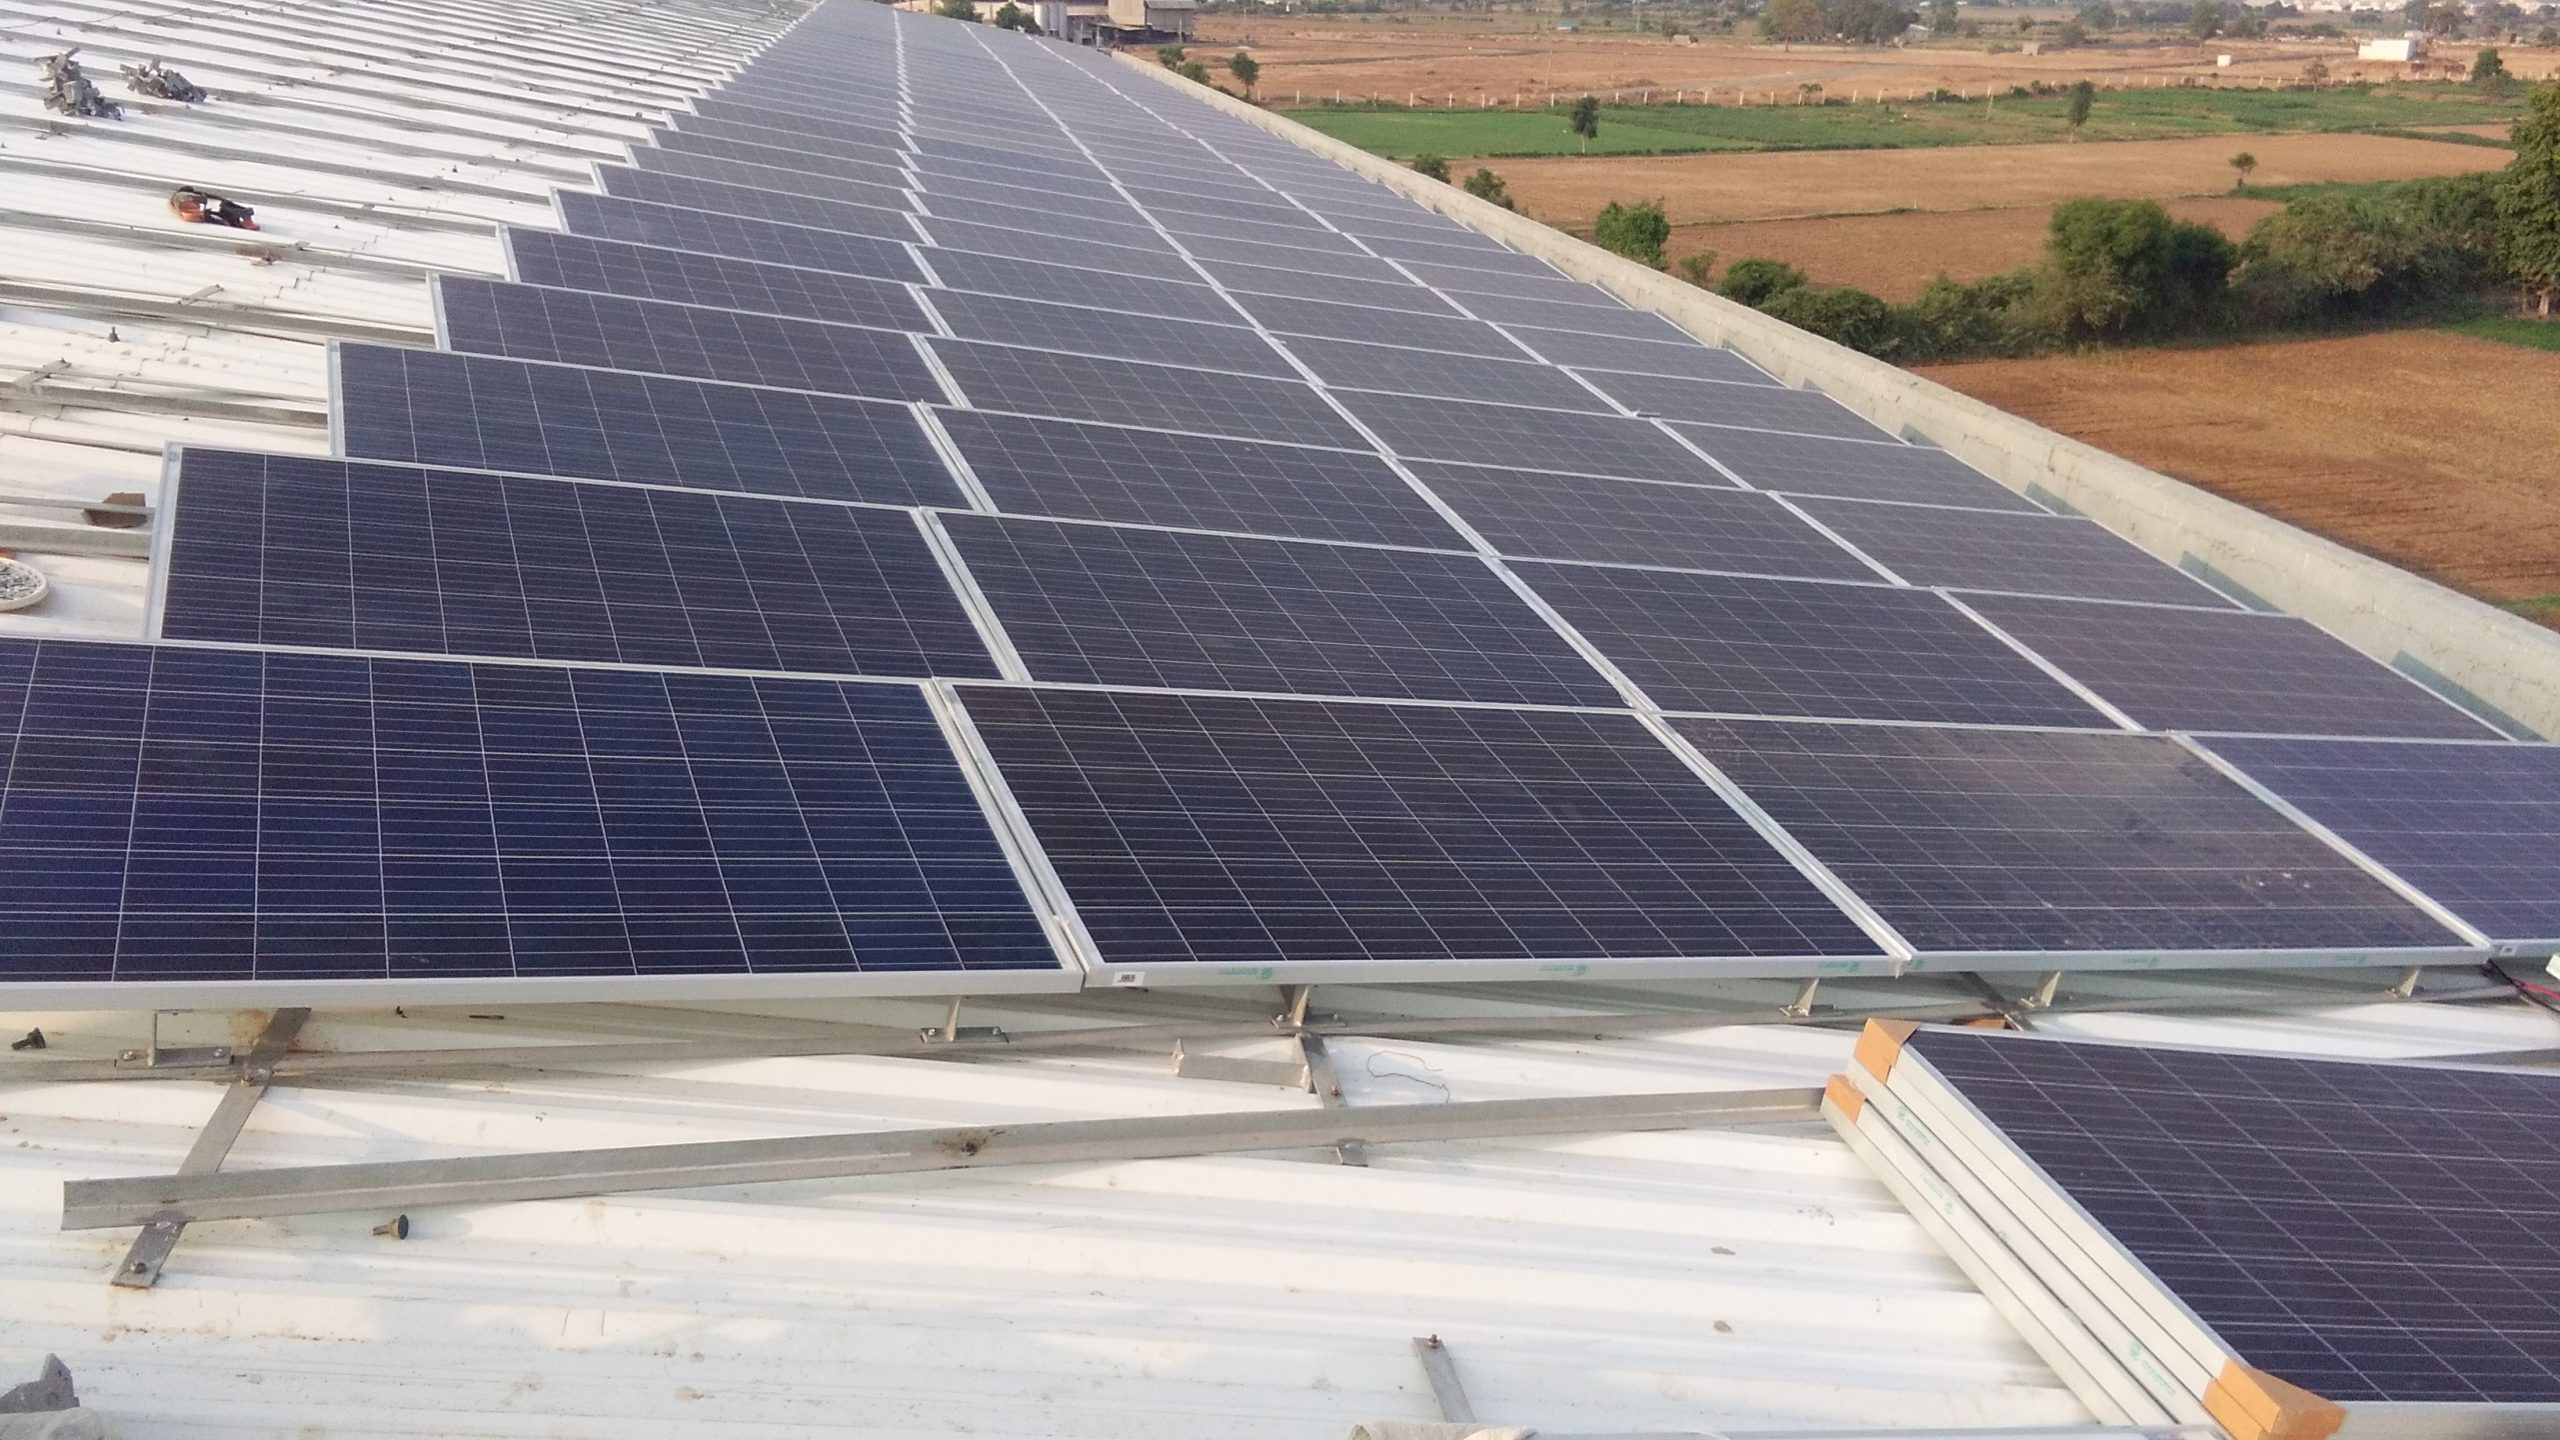 Installation of On-Grid Solar Power Plant at multiple sites around India